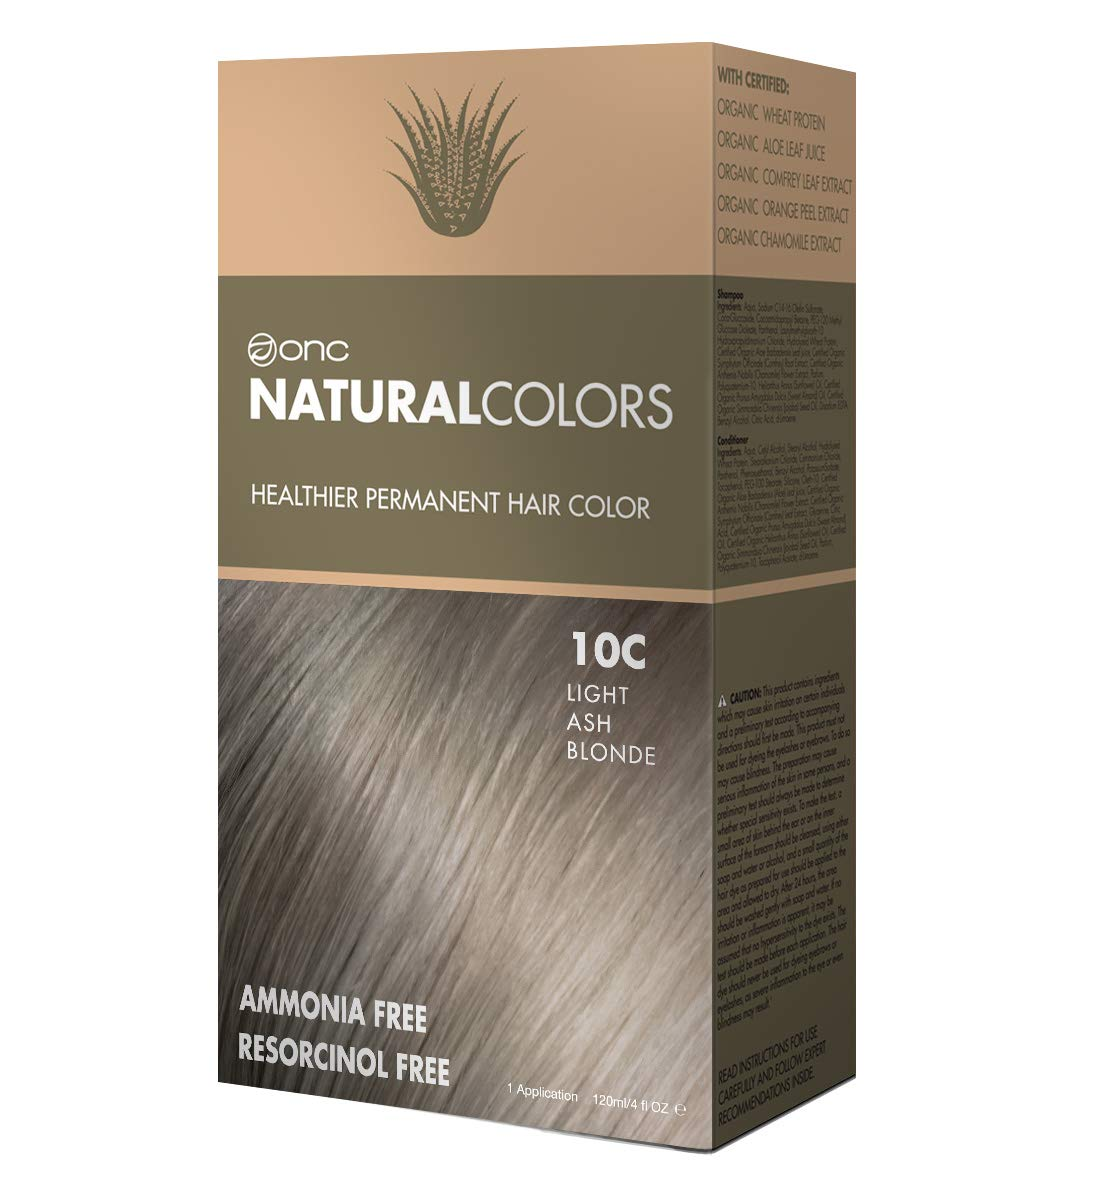 43fef753f Amazon.com   ONC NATURALCOLORS 6C Dark Ash Blonde Healthier ...